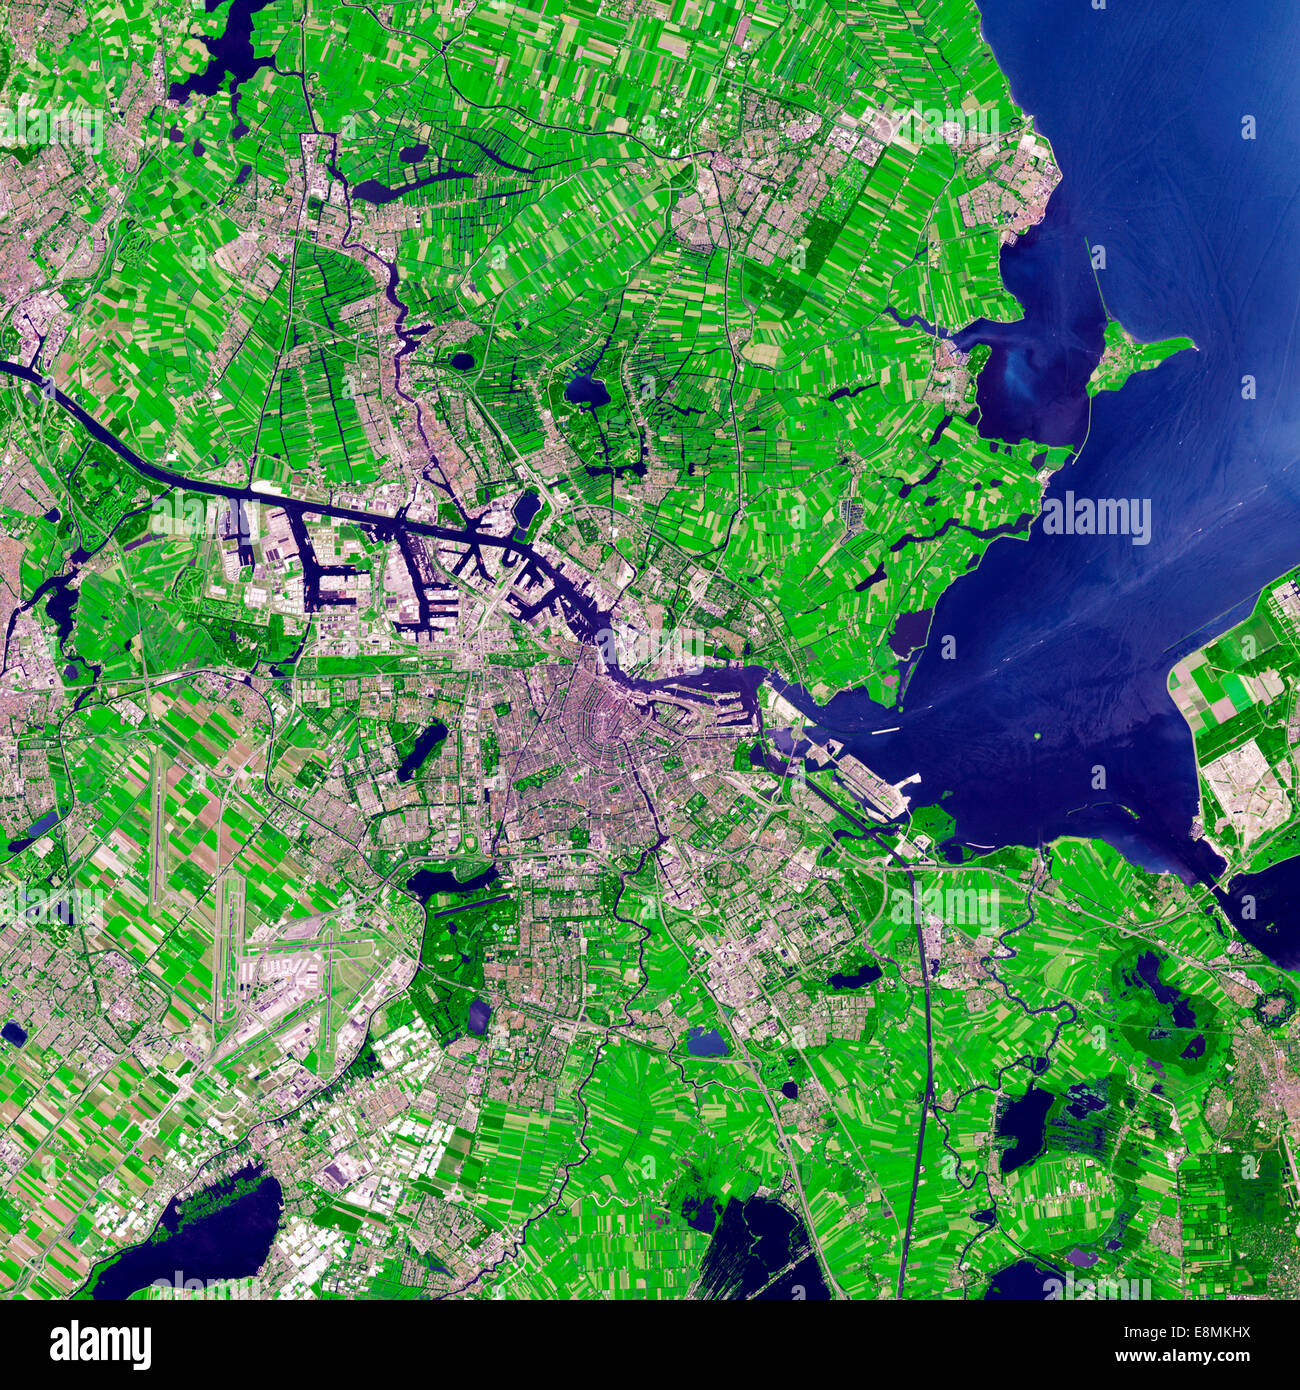 July 24, 2012 - Satellite view of Amsterdam, Netherlands. Urbanized areas appear in shades of gray; vegetation is - Stock Image